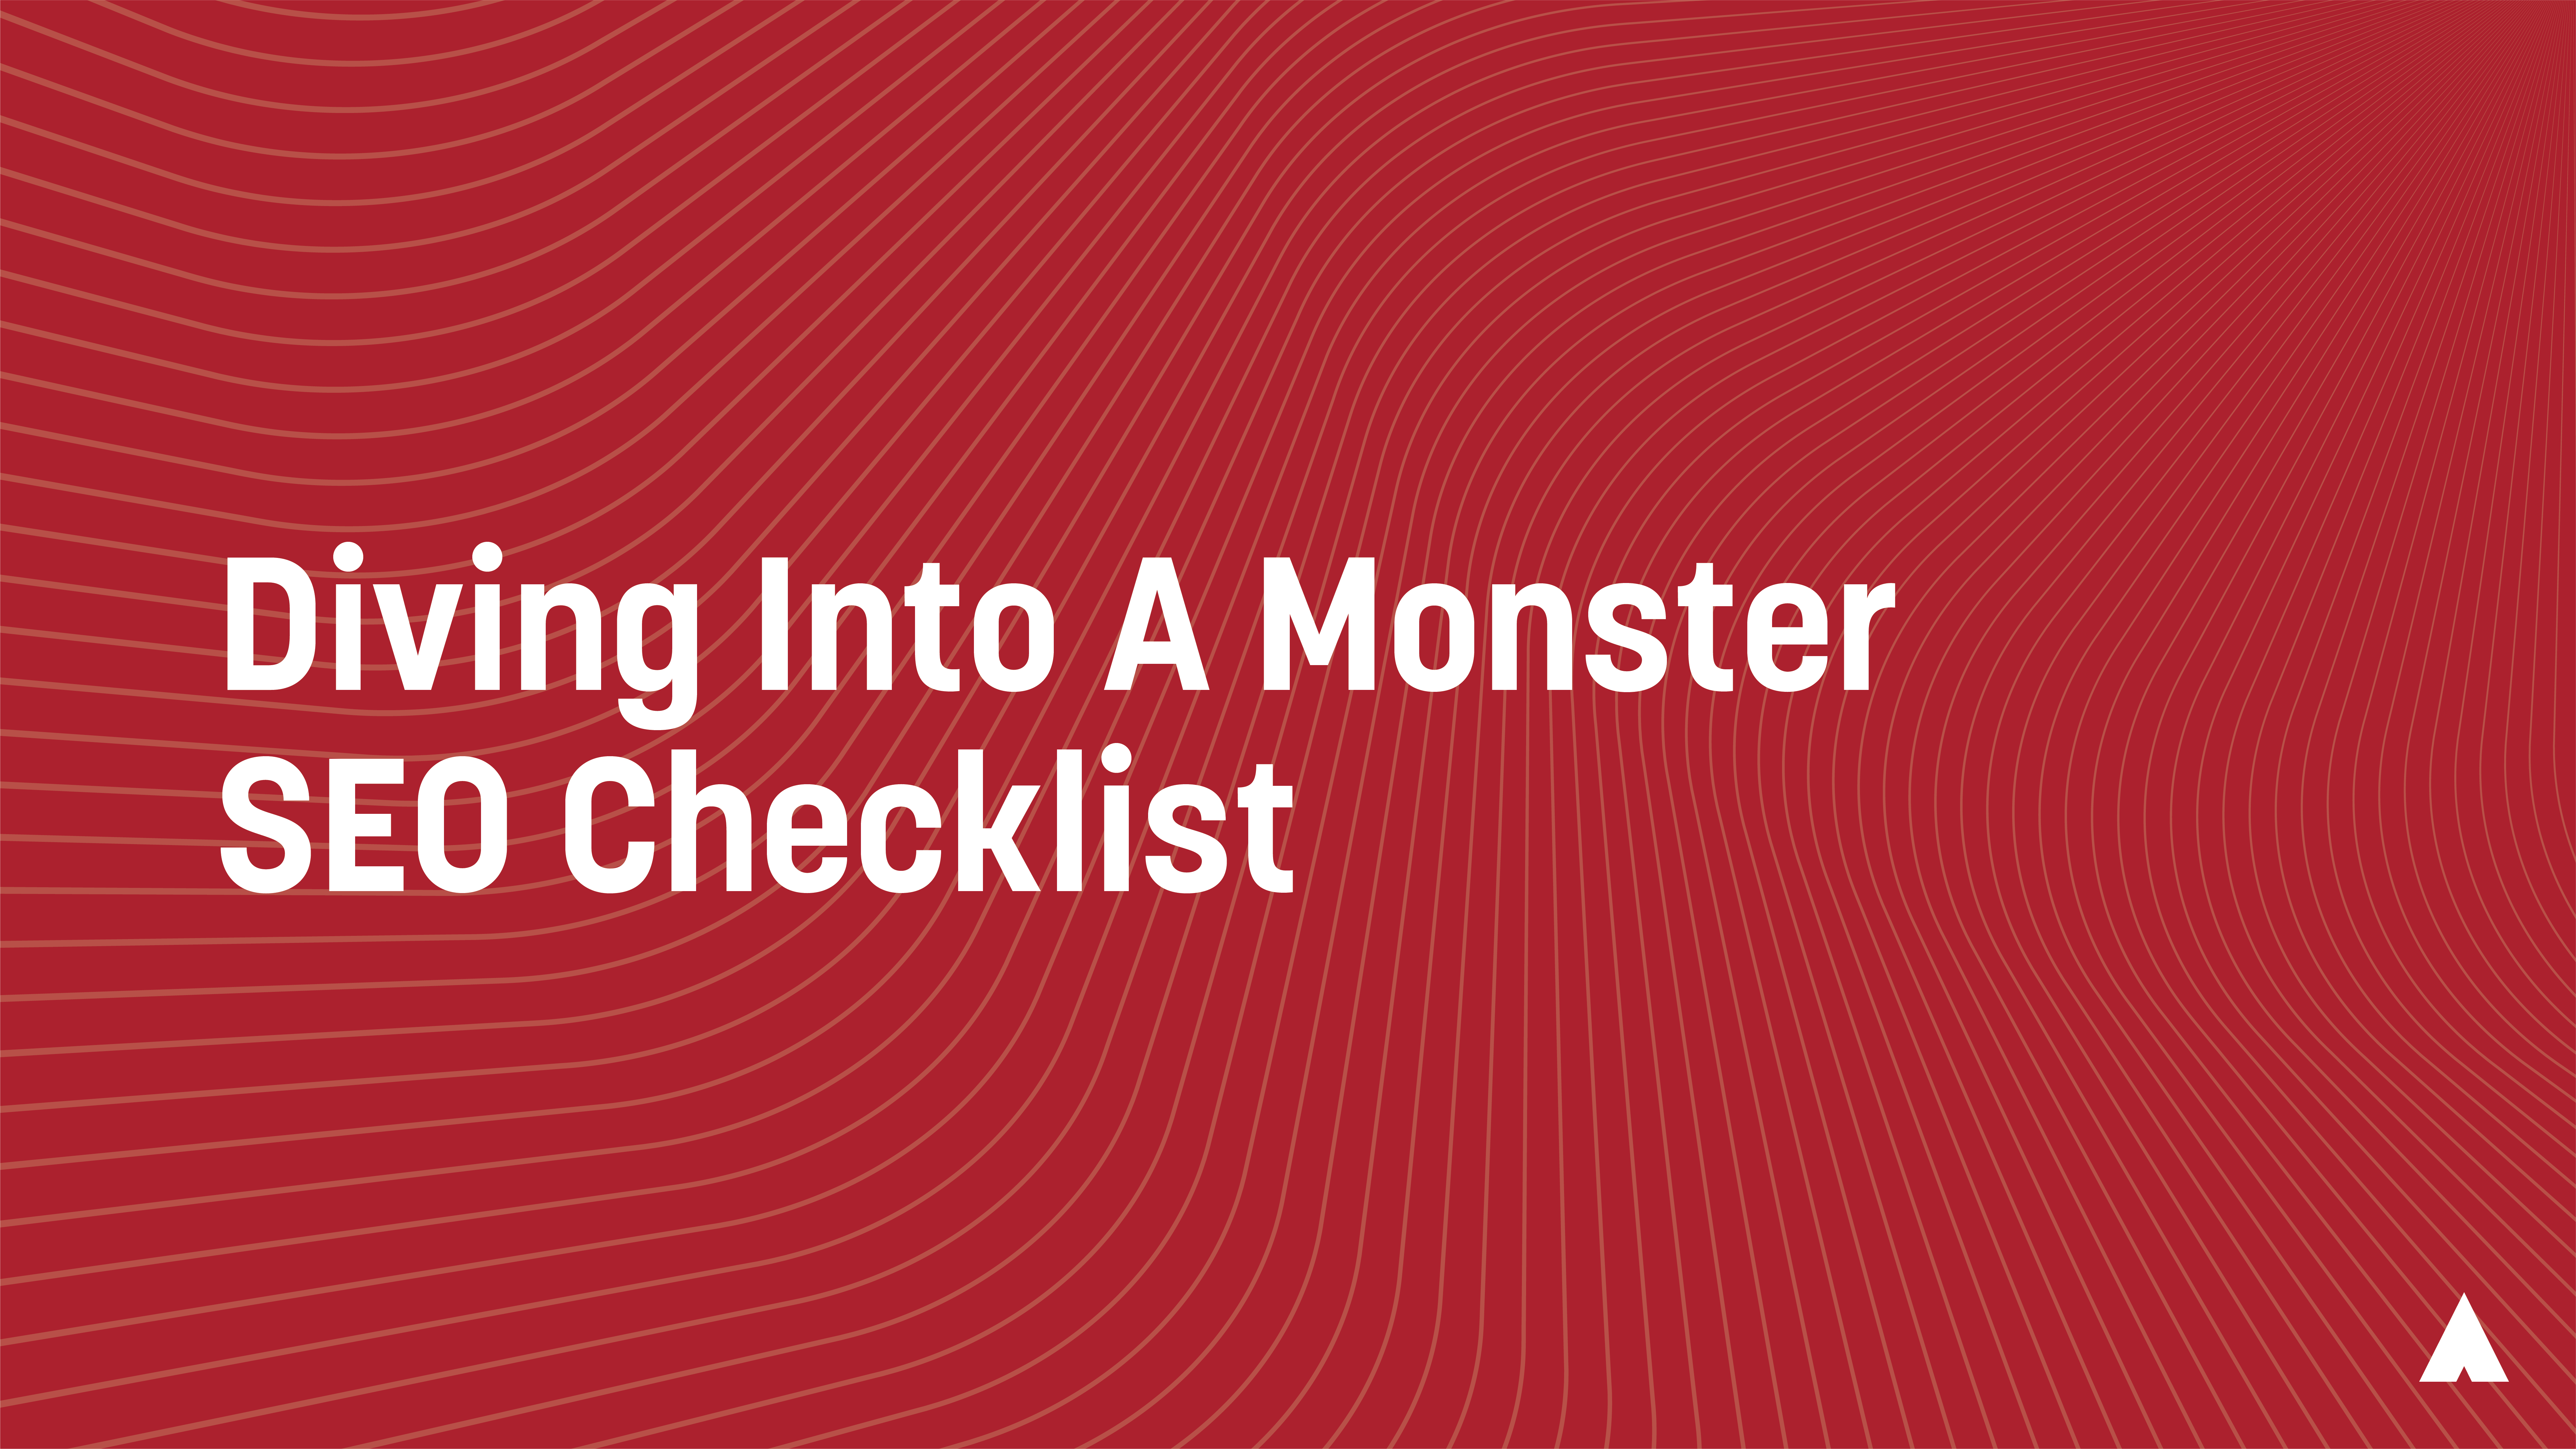 Diving Into A Monster SEO Checklist